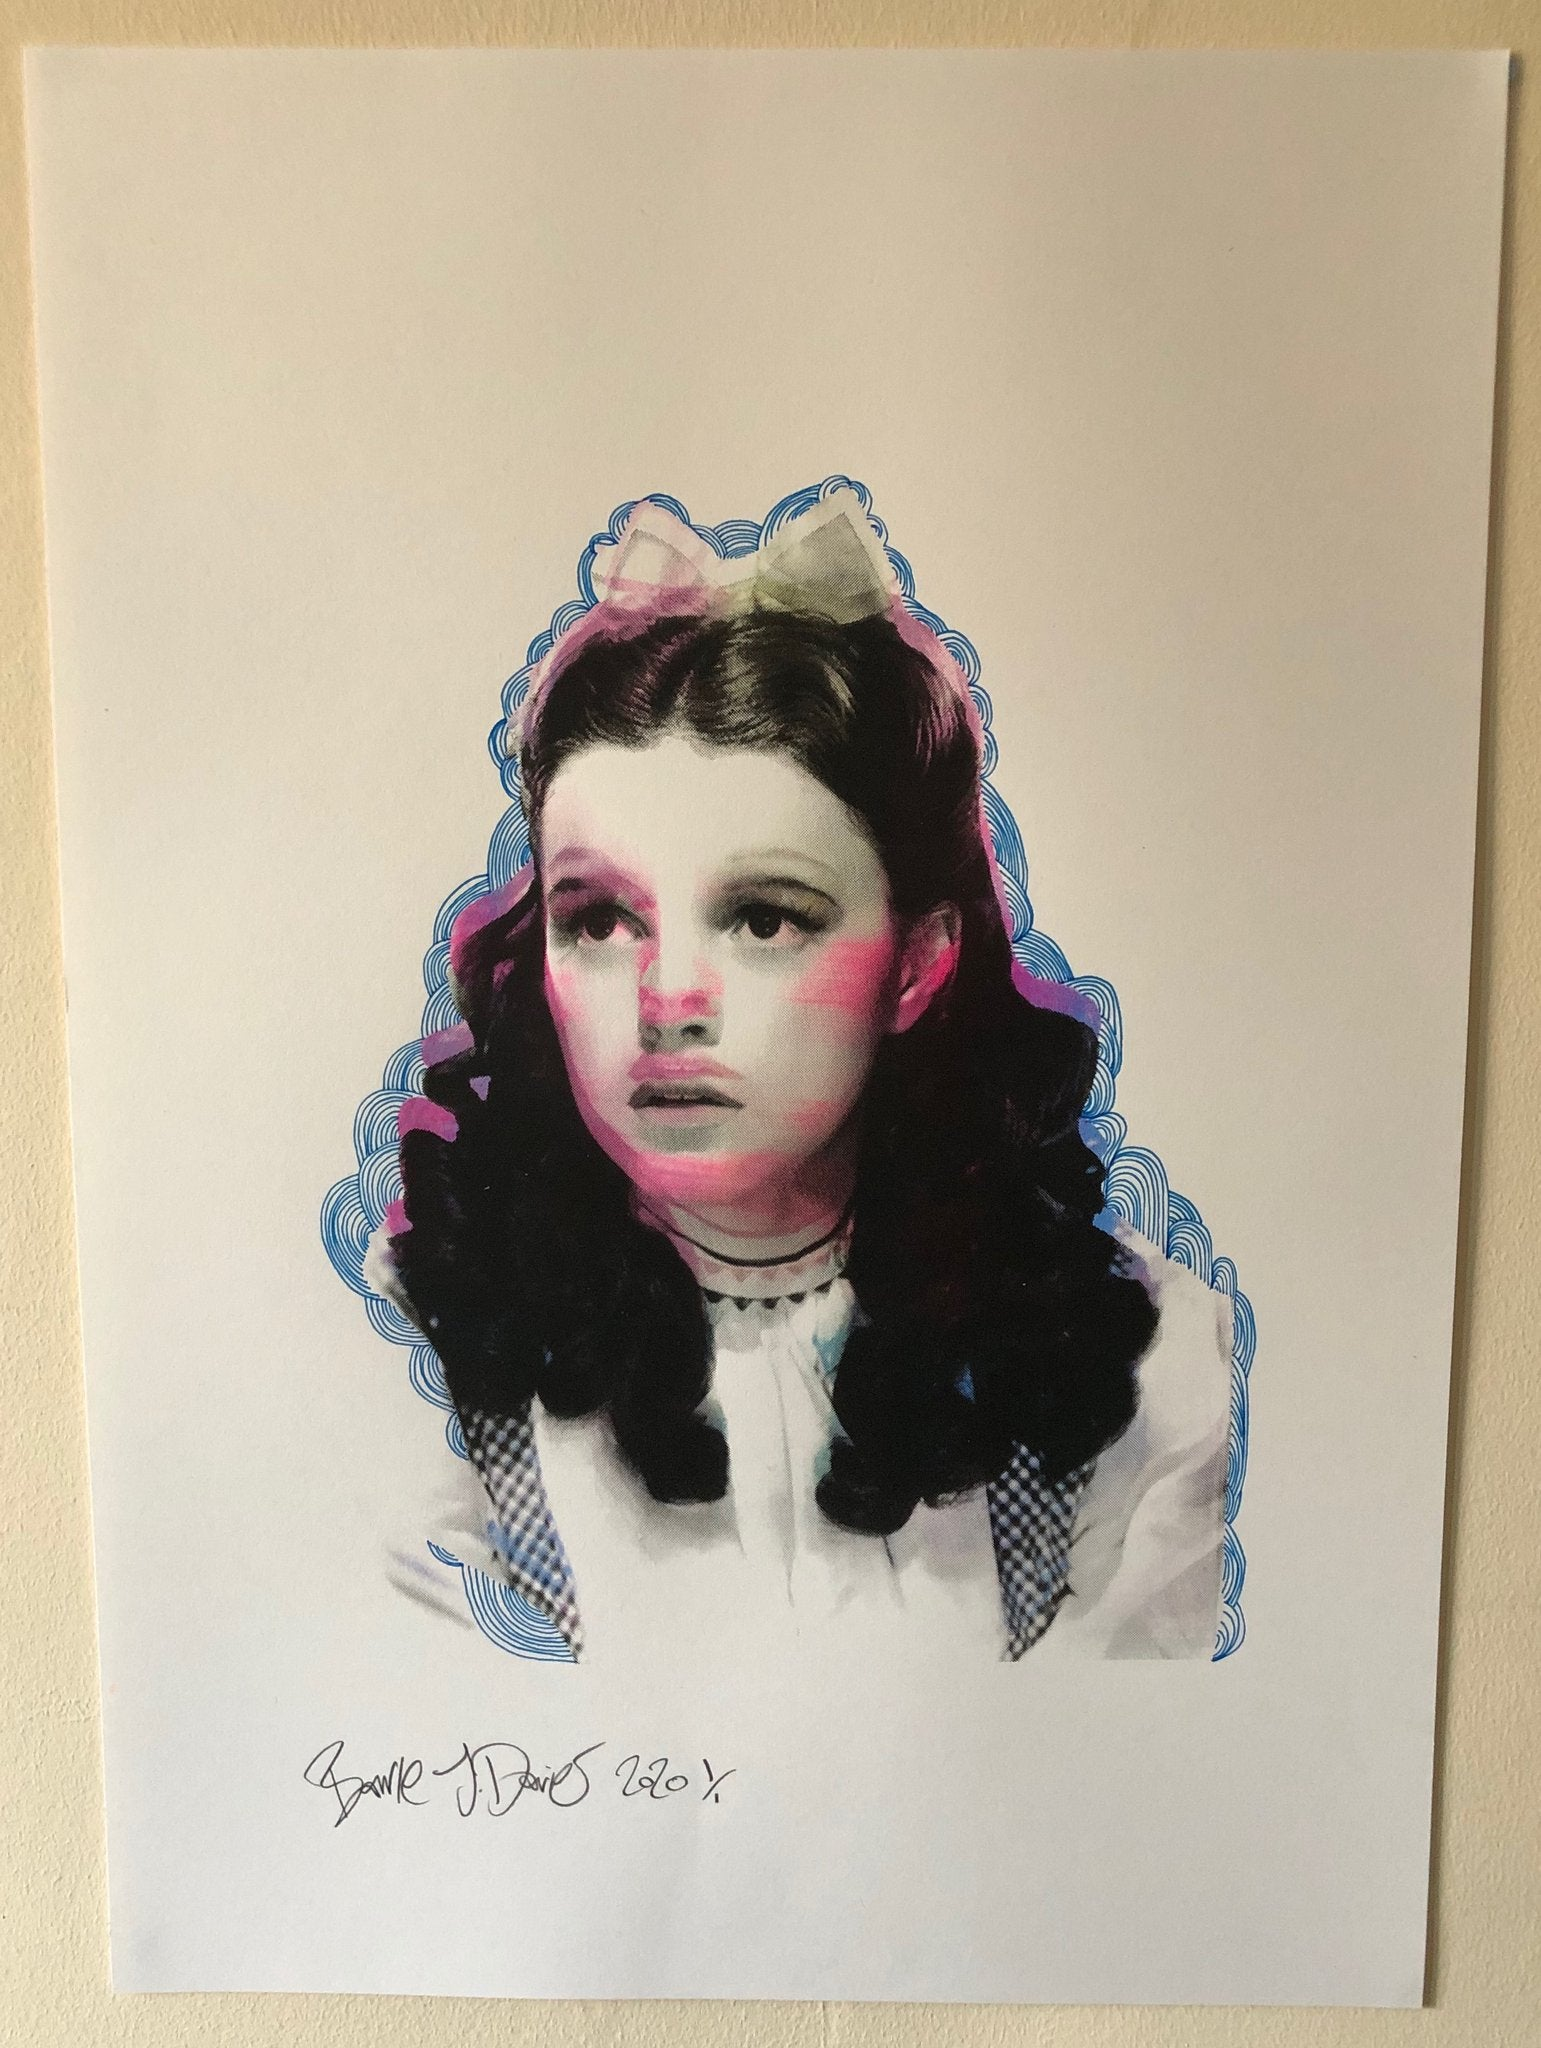 Doodle Dorothy Print by Barrie J Davies 2020 - unframed Silkscreen print on paper (hand finished) edition of 1/1 - A2 size 42cm x 59.4cm. Barrie J Davies is an Artist - Pop Art and Street art inspired Artist based in Brighton England UK - Pop Art Paintings, Street Art Prints & Editions available.